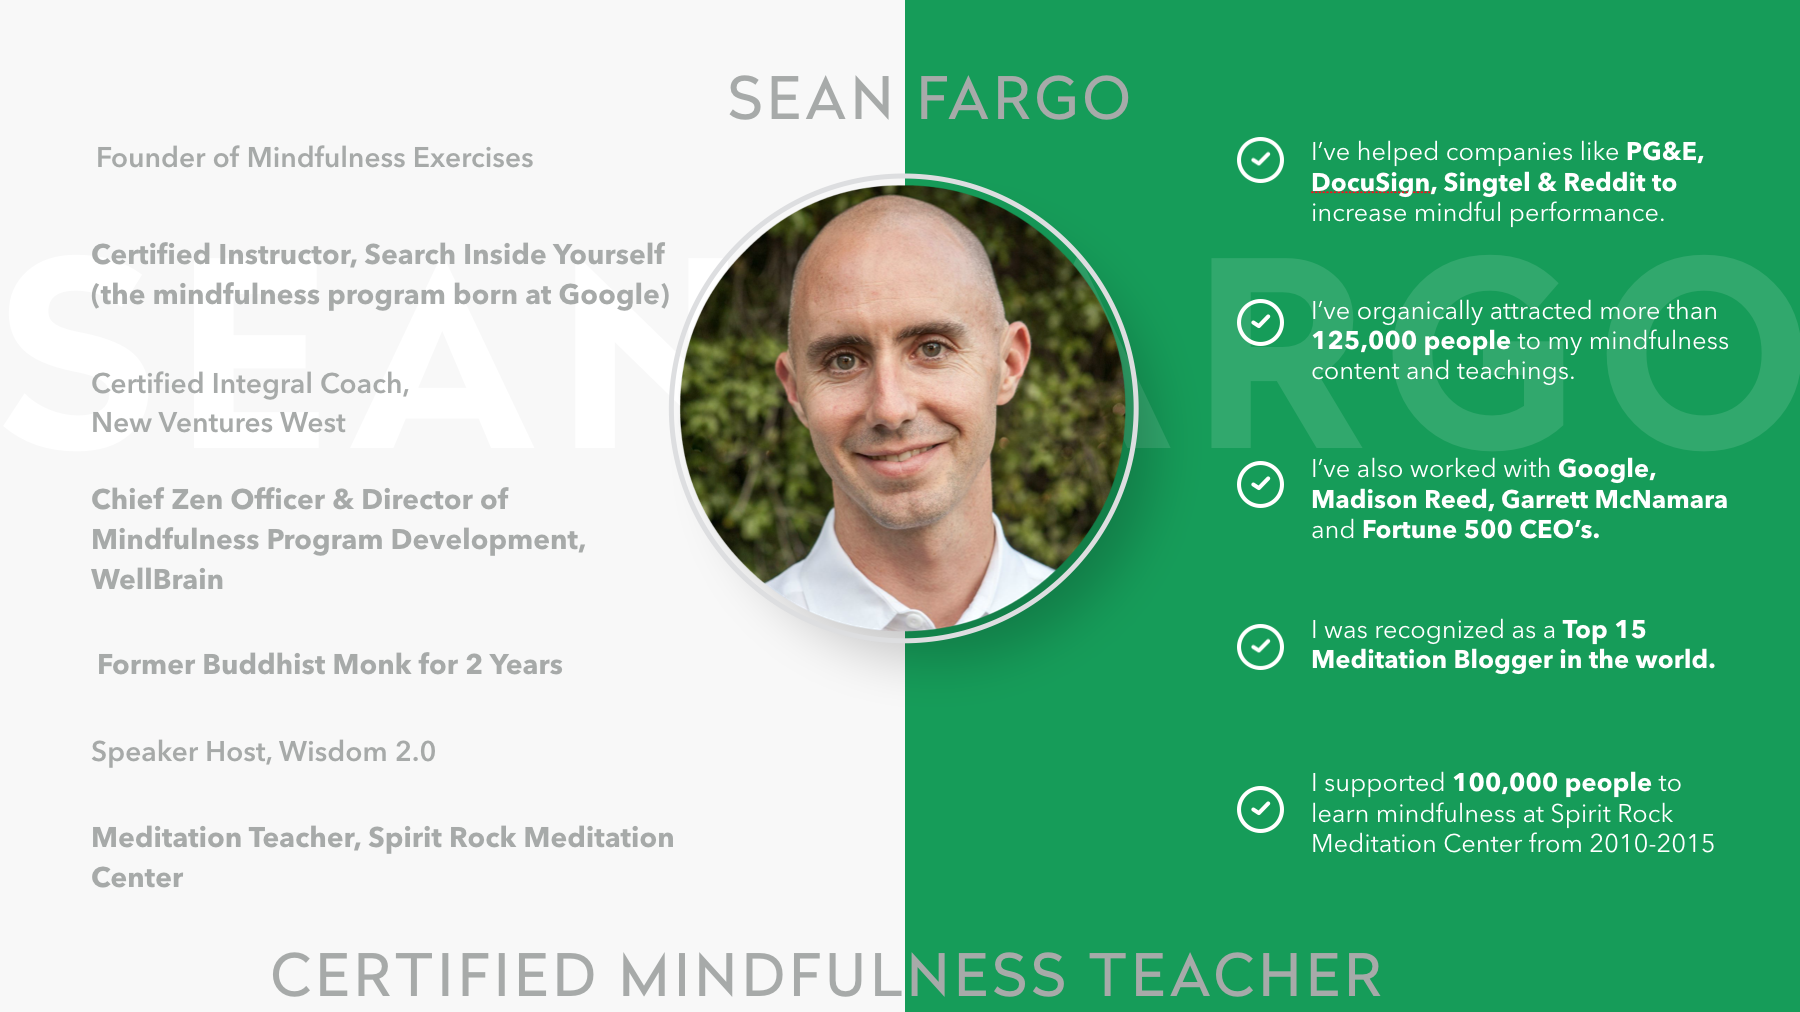 """<h1 style=""""text-align: center;""""><strong><span style=""""color: green;"""">The Online Mindfulness Teacher Certification Program</span></strong></h1>"""